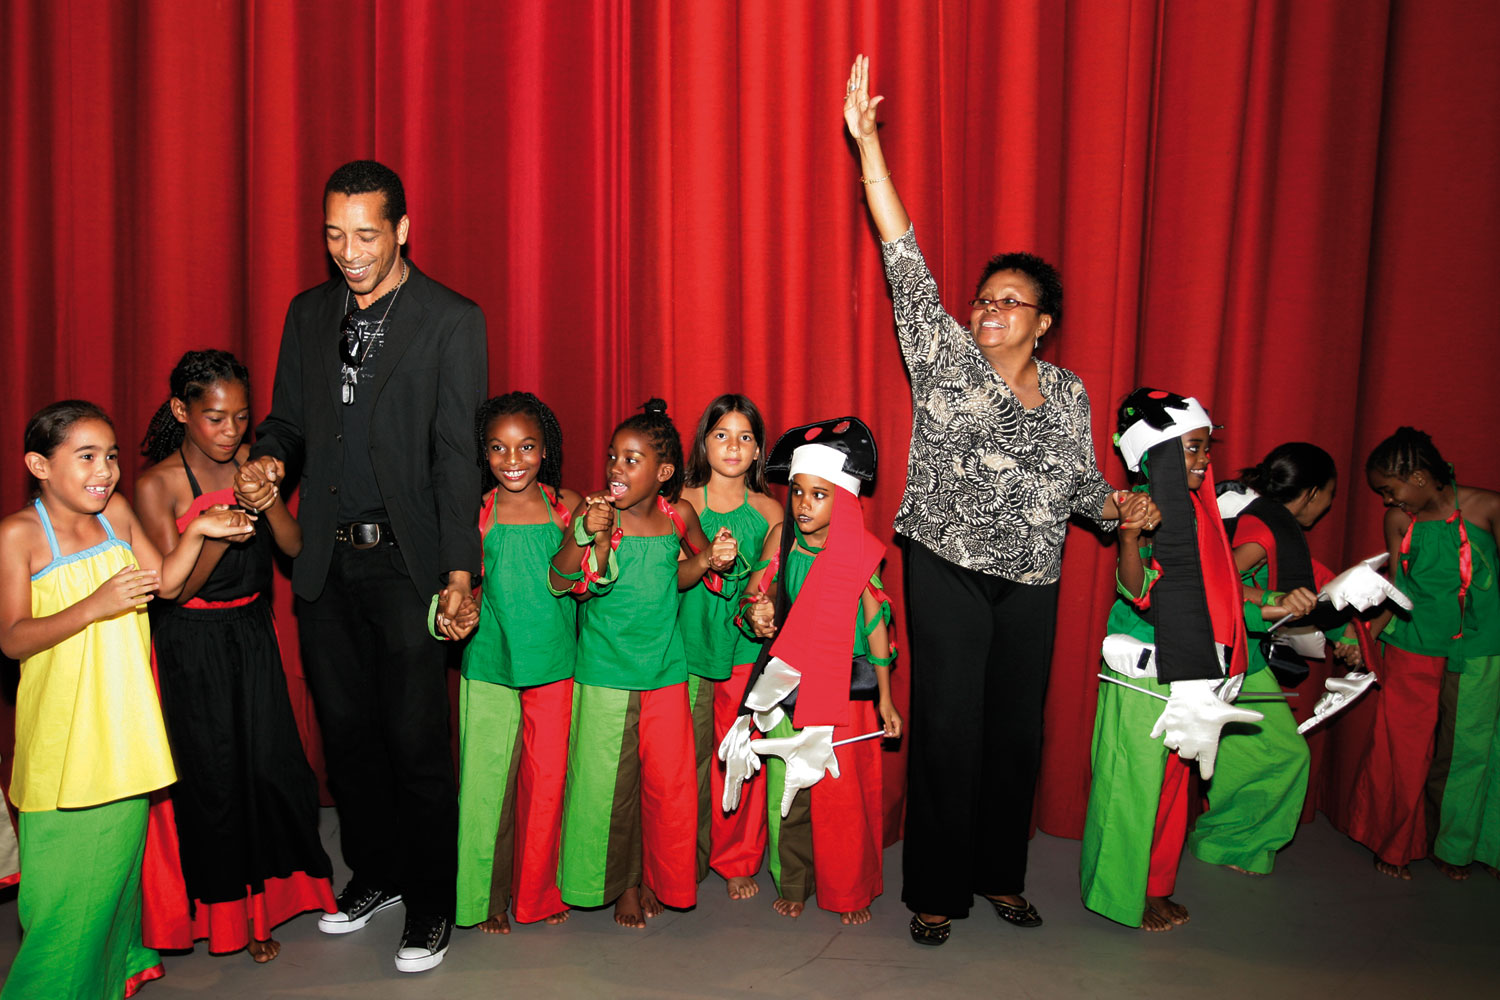 Douglas with drama teacher Wendell Manwarren and members of the Lilliput Children's Theatre backstage. Photograph by Marlon Rouse